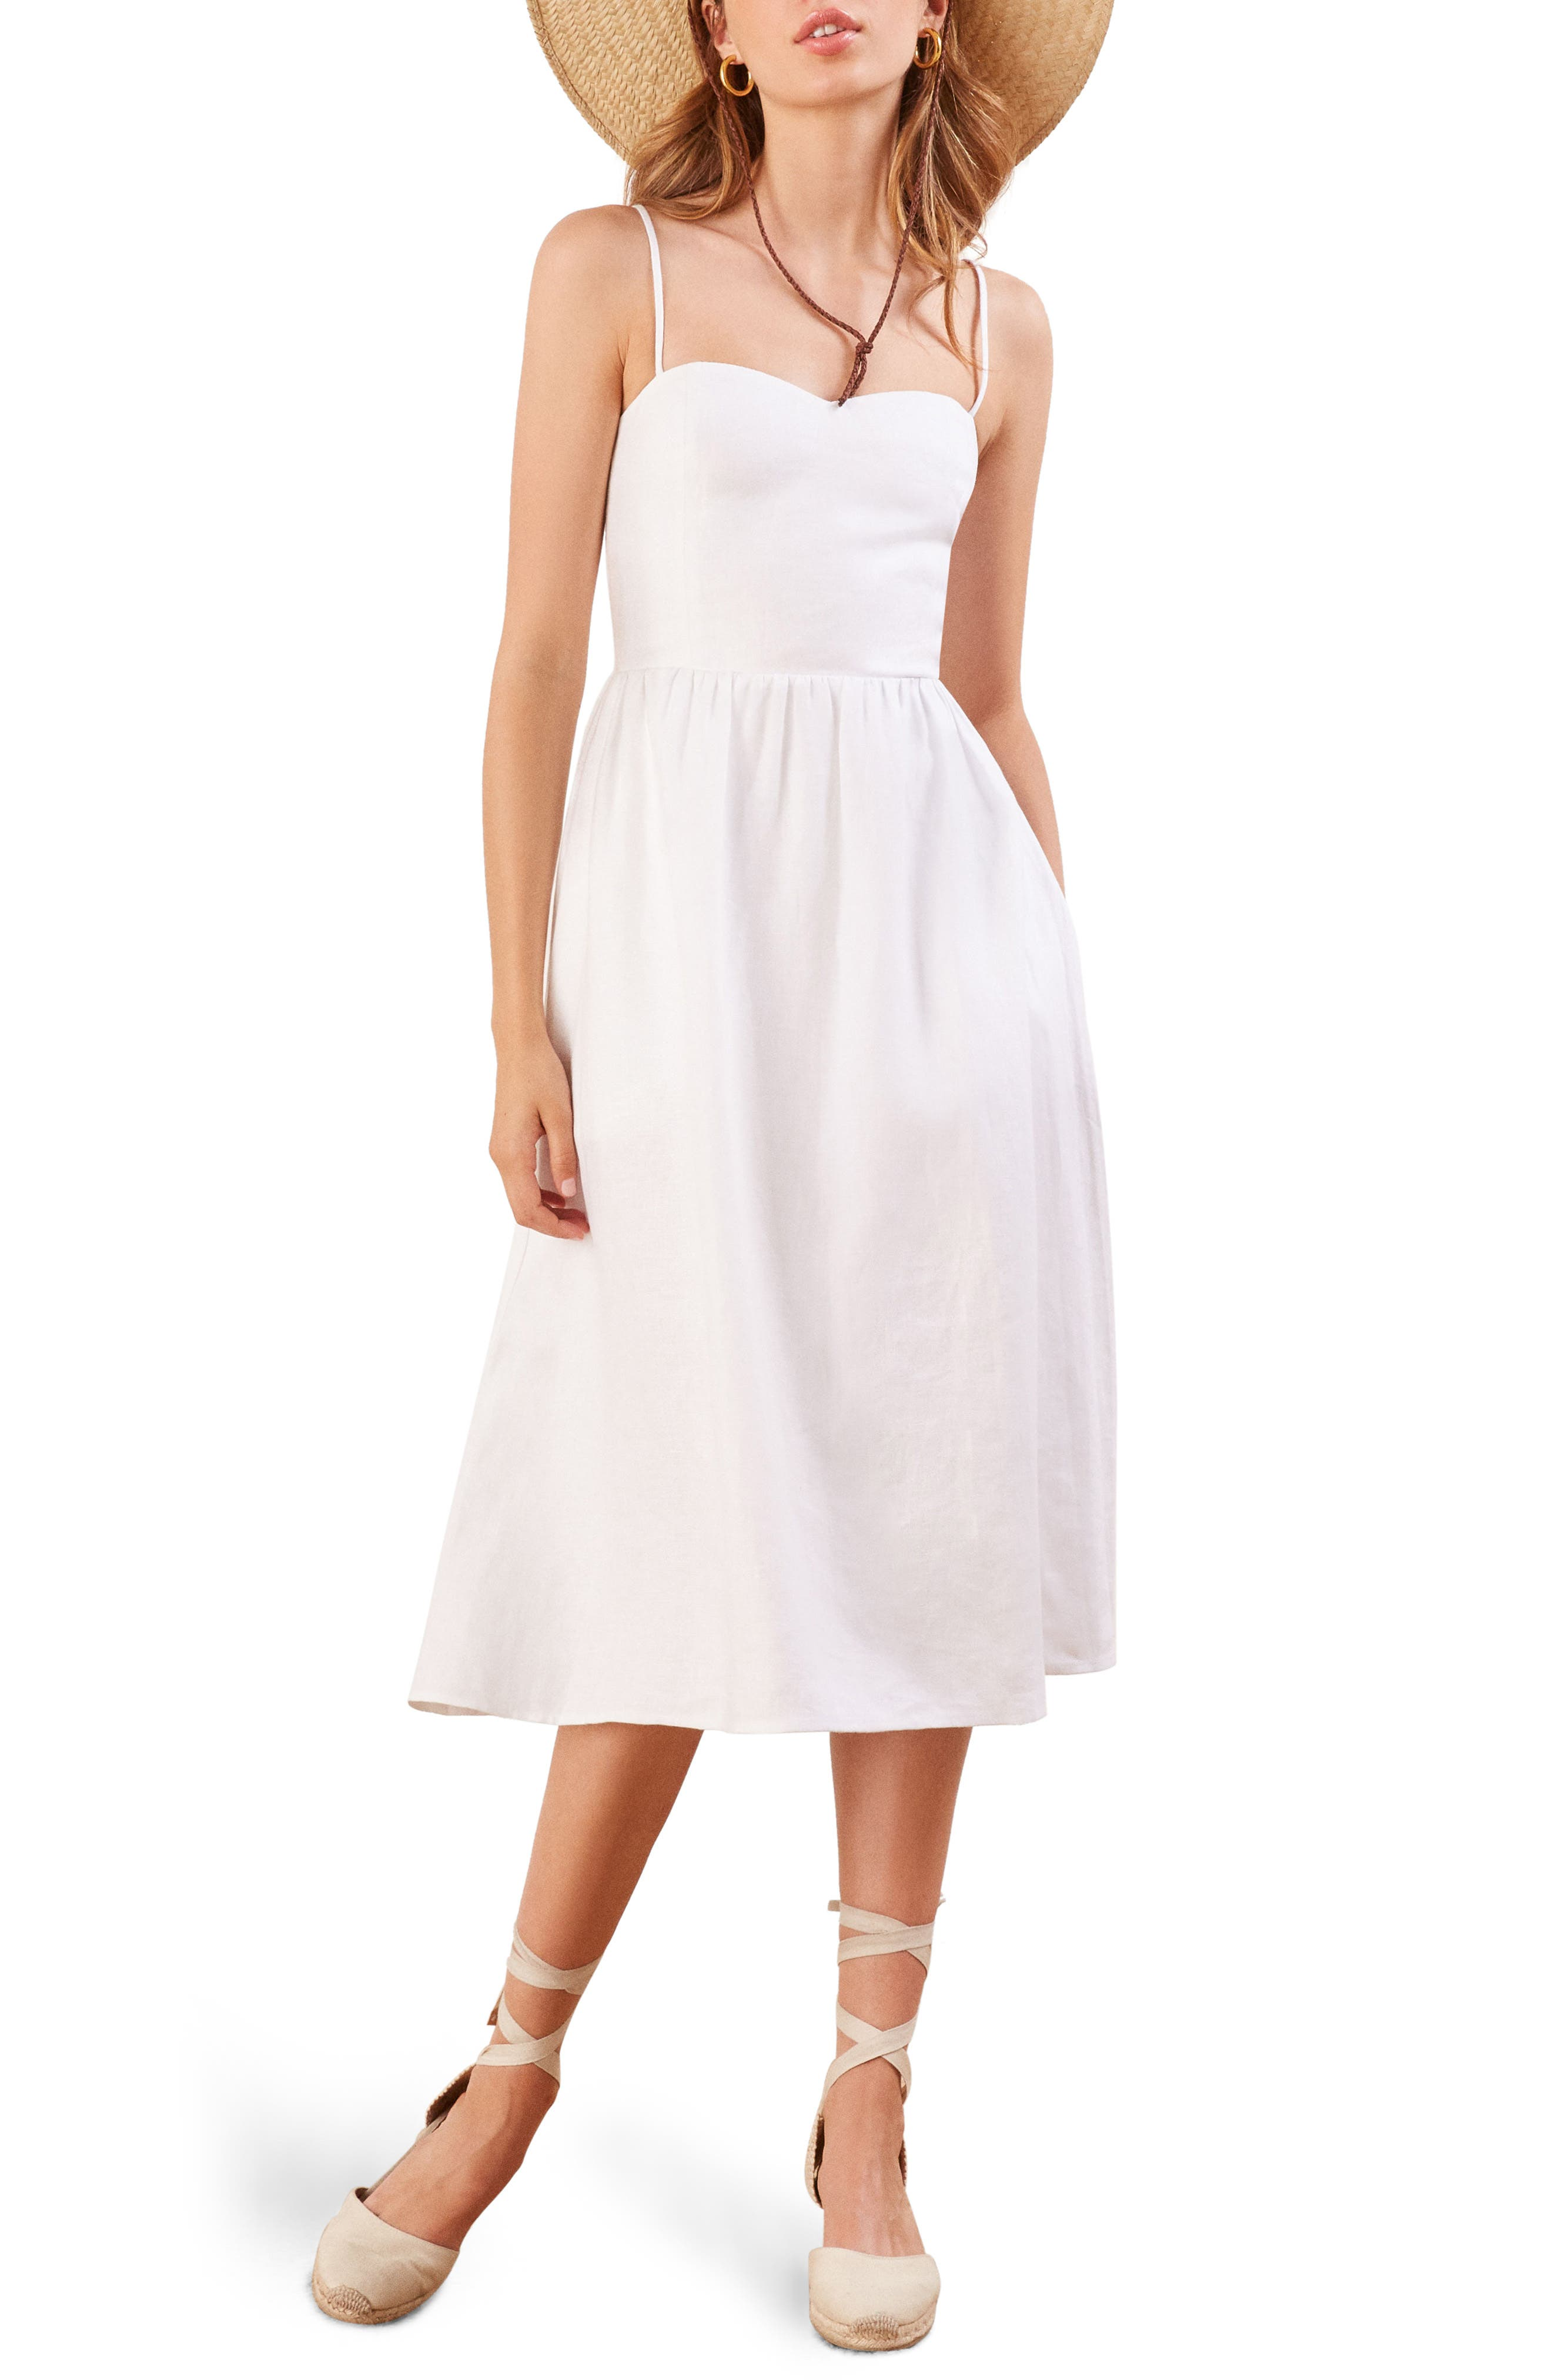 Olivia Linen Midi Dress,                             Main thumbnail 1, color,                             100